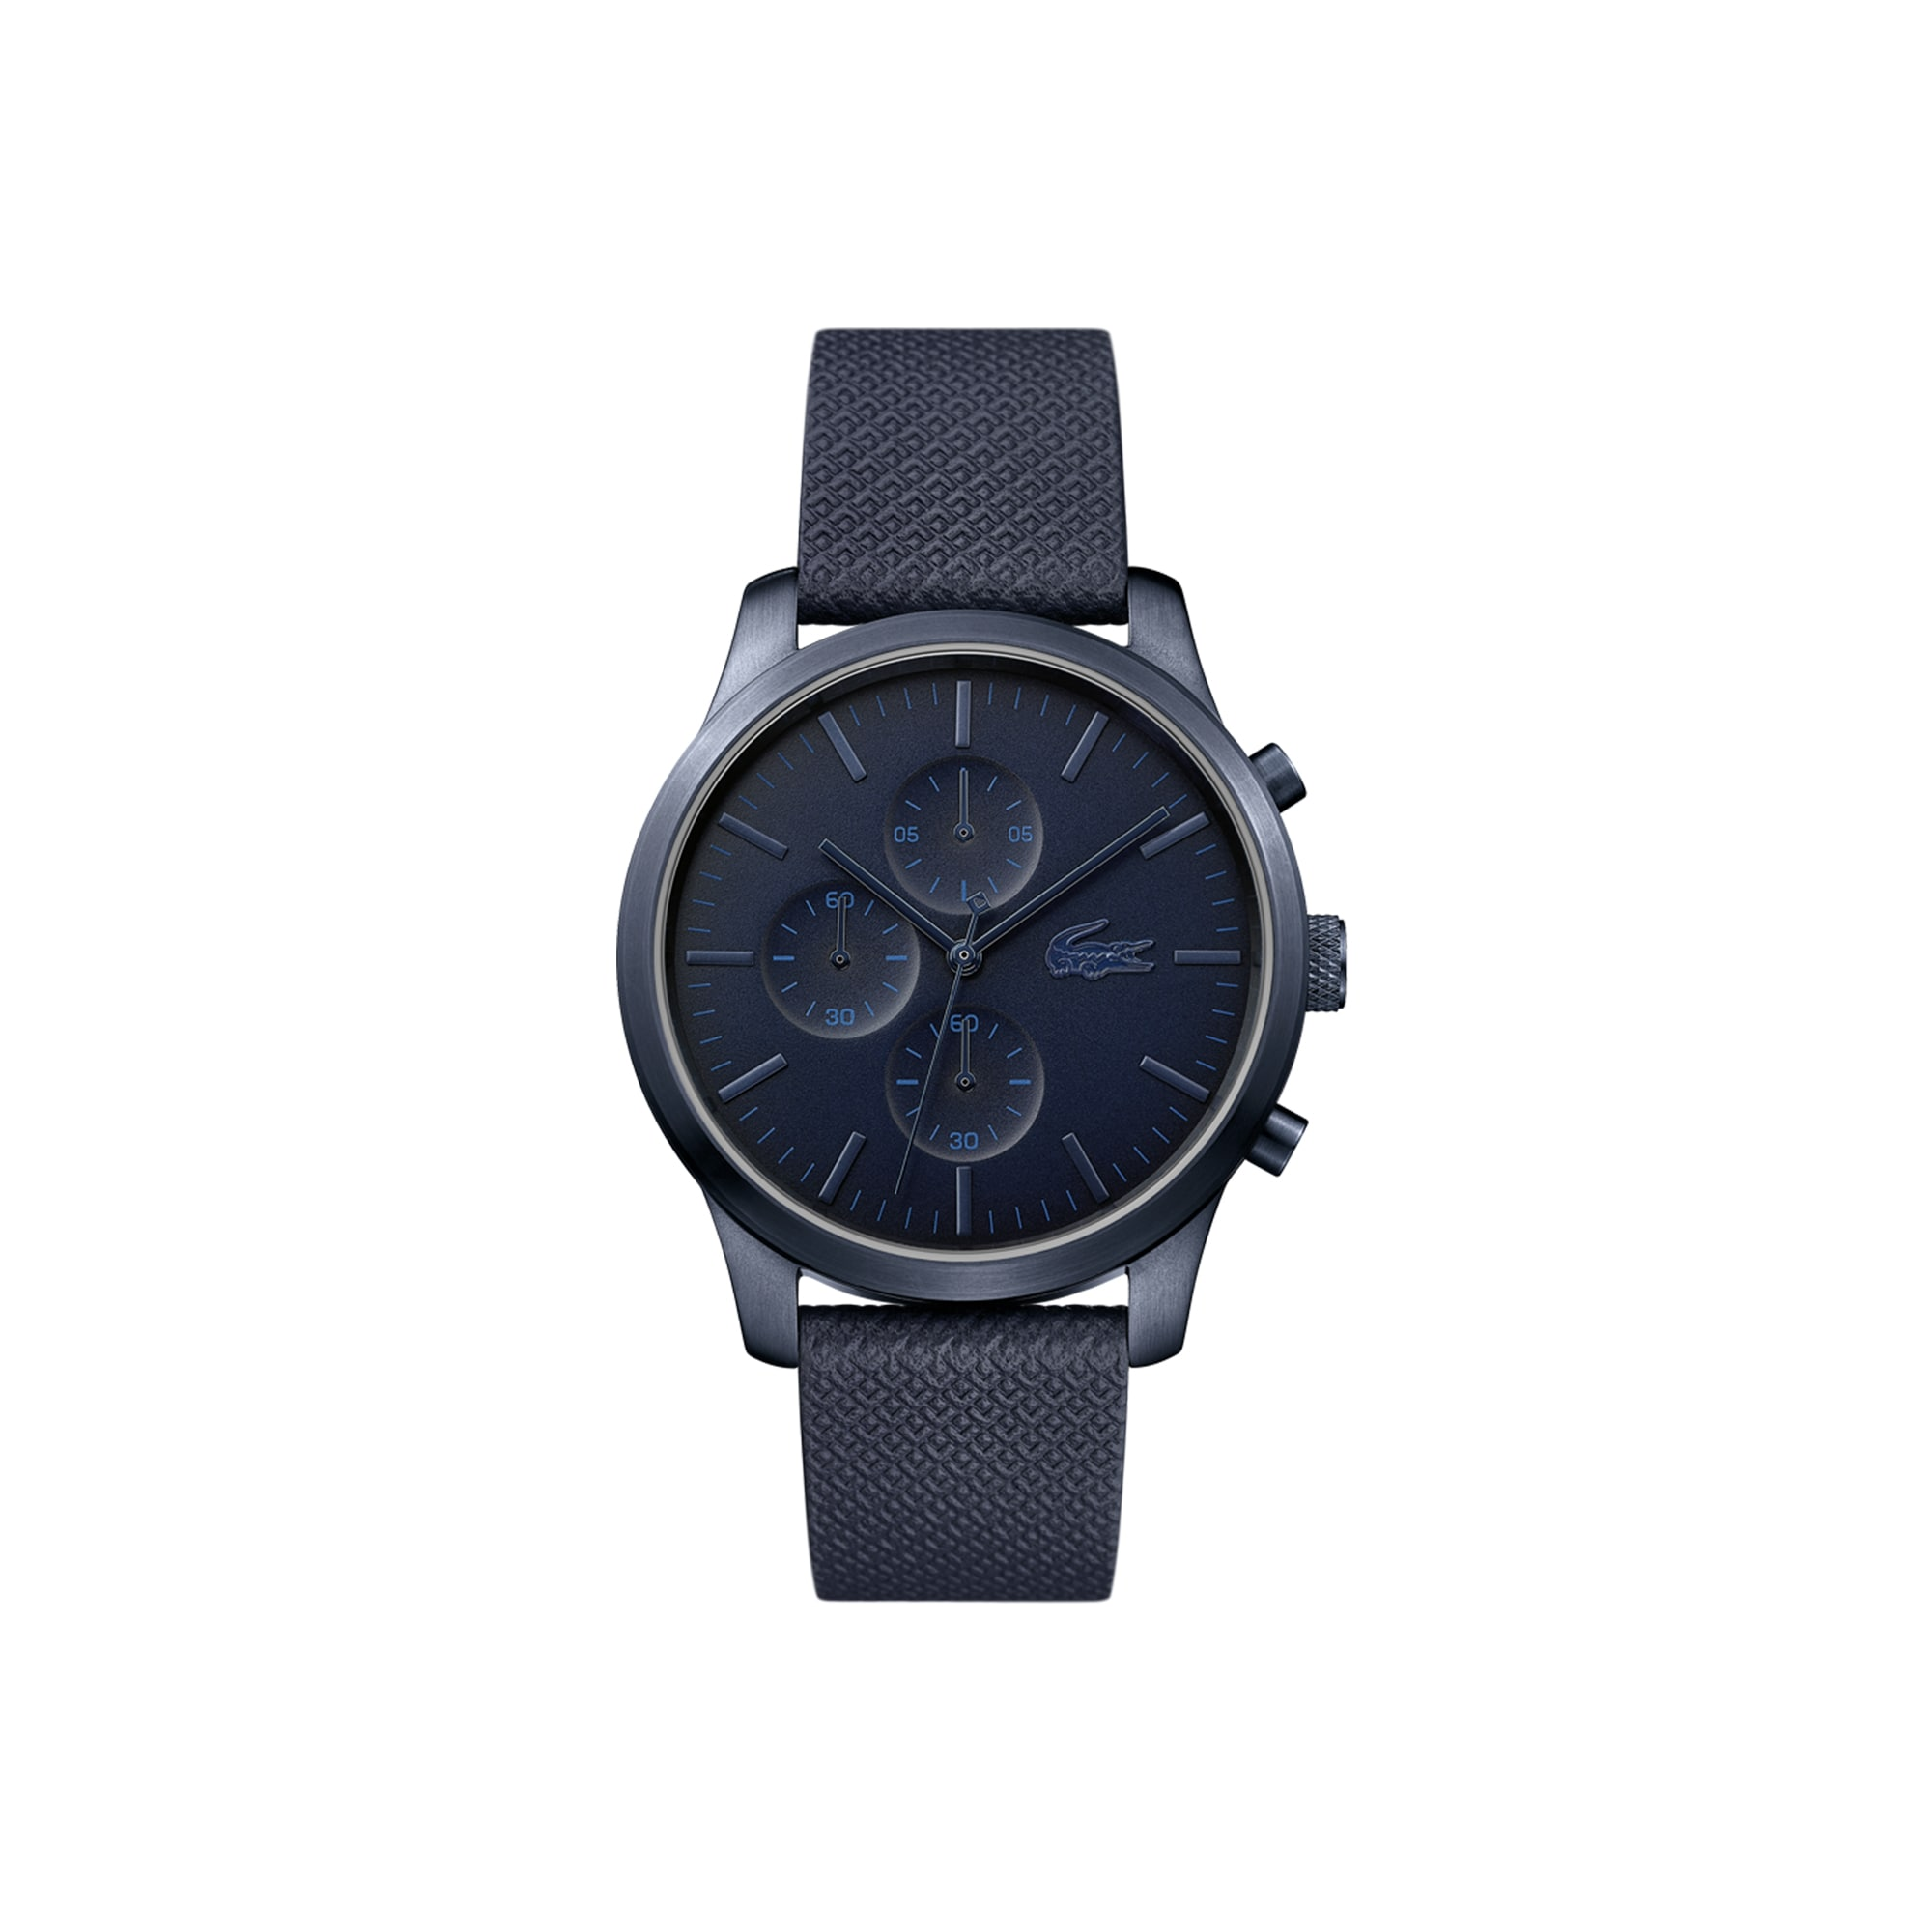 Men's Lacoste 12.12 Chronograph Watch 85th Anniversary with Blue Petit Piqué Embossed Leather Strap